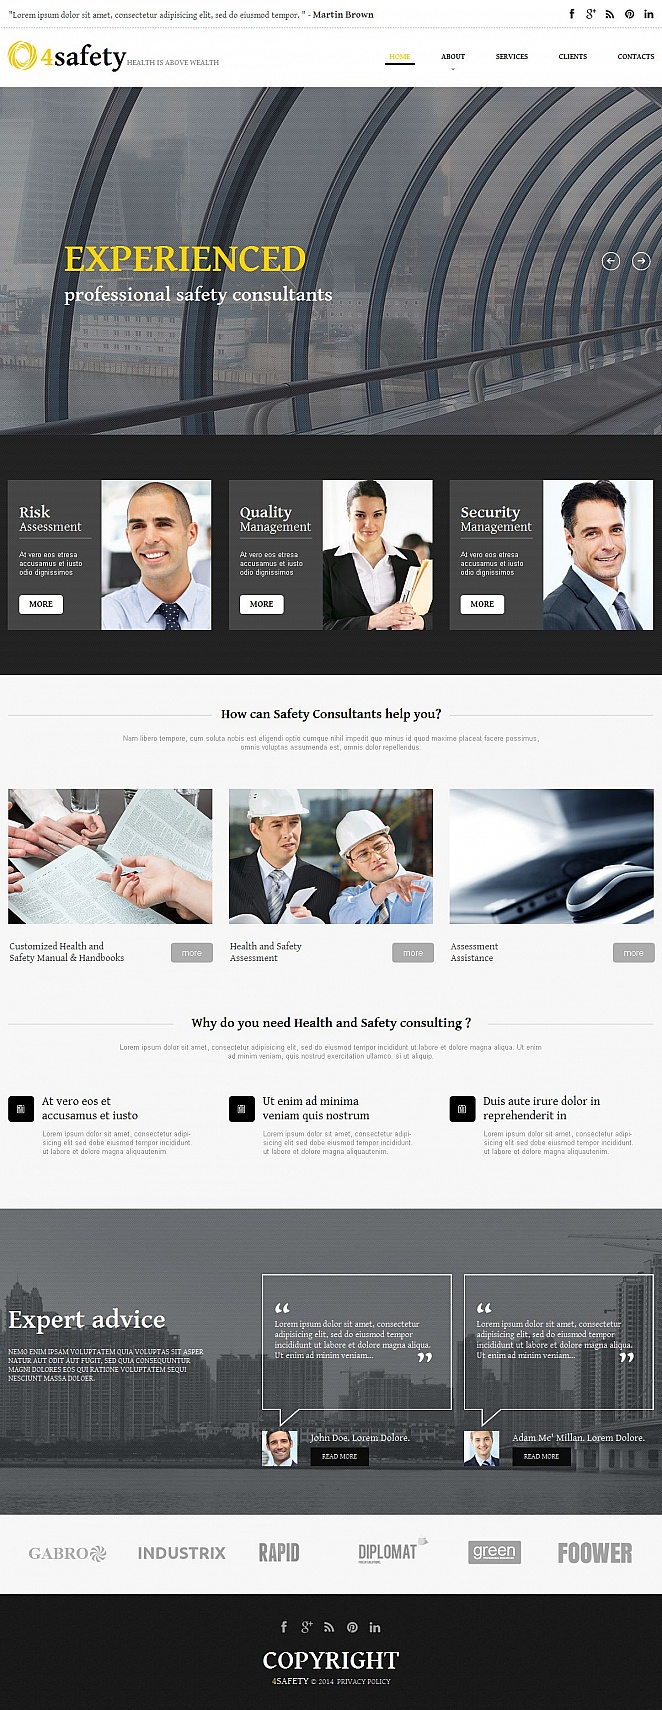 Safety Consulting Website Template - image